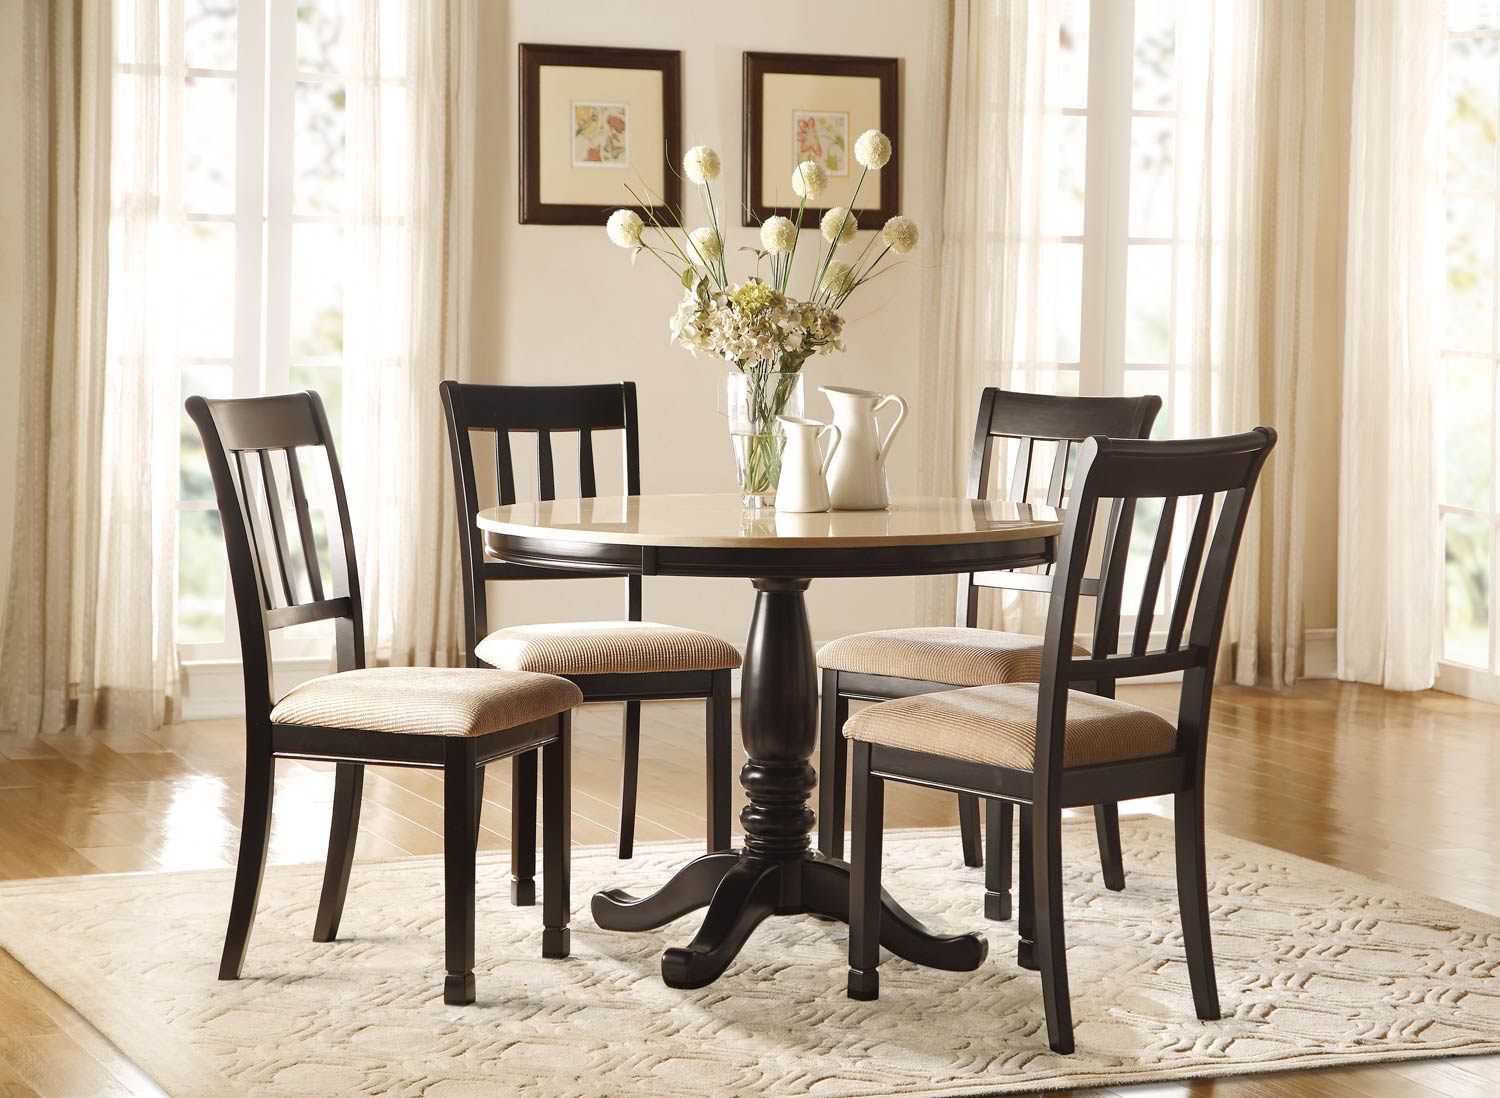 Homelegance Dearborn Round Dinng Set - Faux Marble Top - Black/Cream